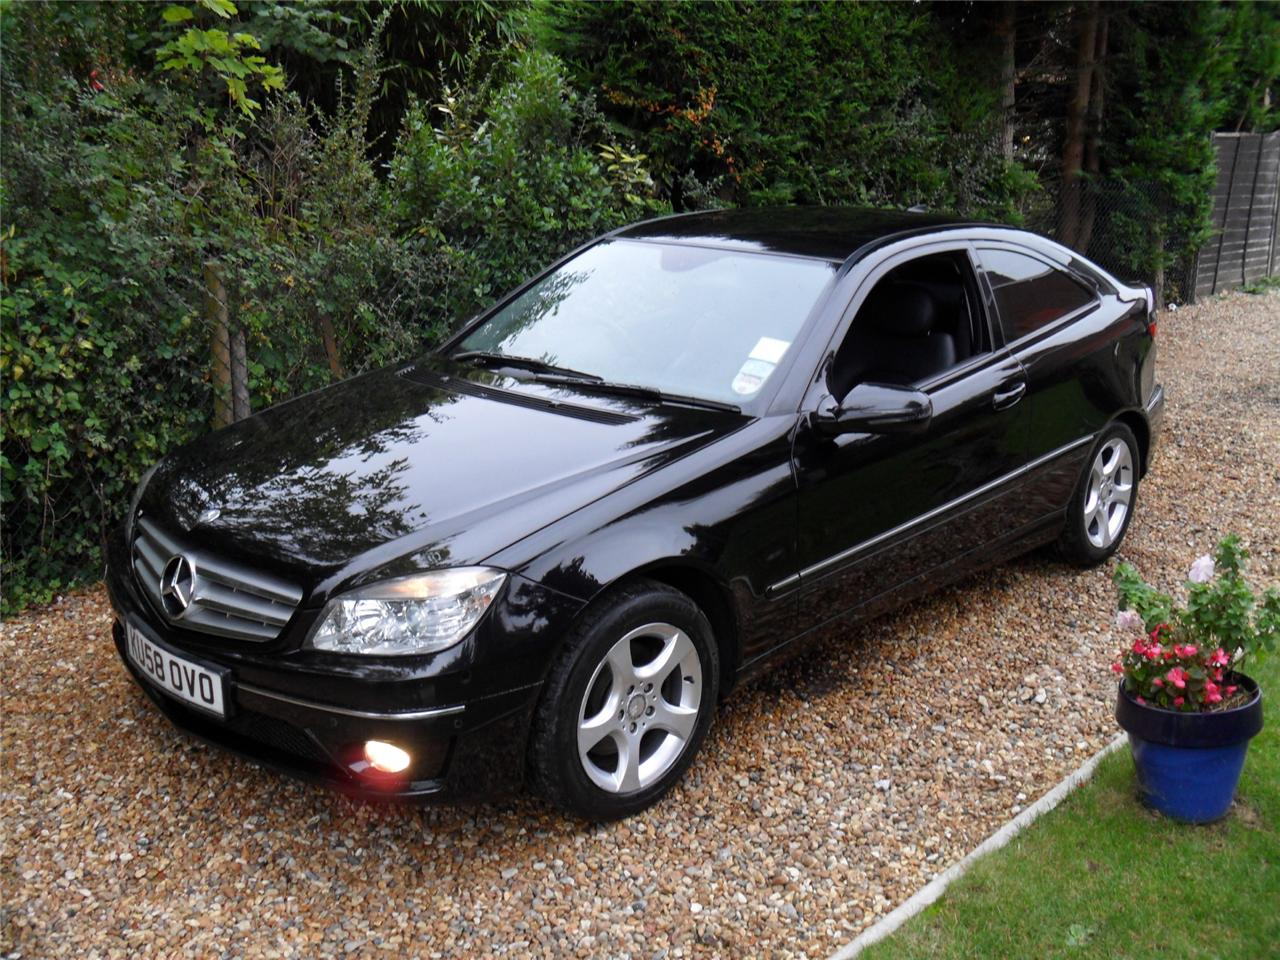 2008 58 black mercedes benz clc 200 kompressor ebay. Black Bedroom Furniture Sets. Home Design Ideas